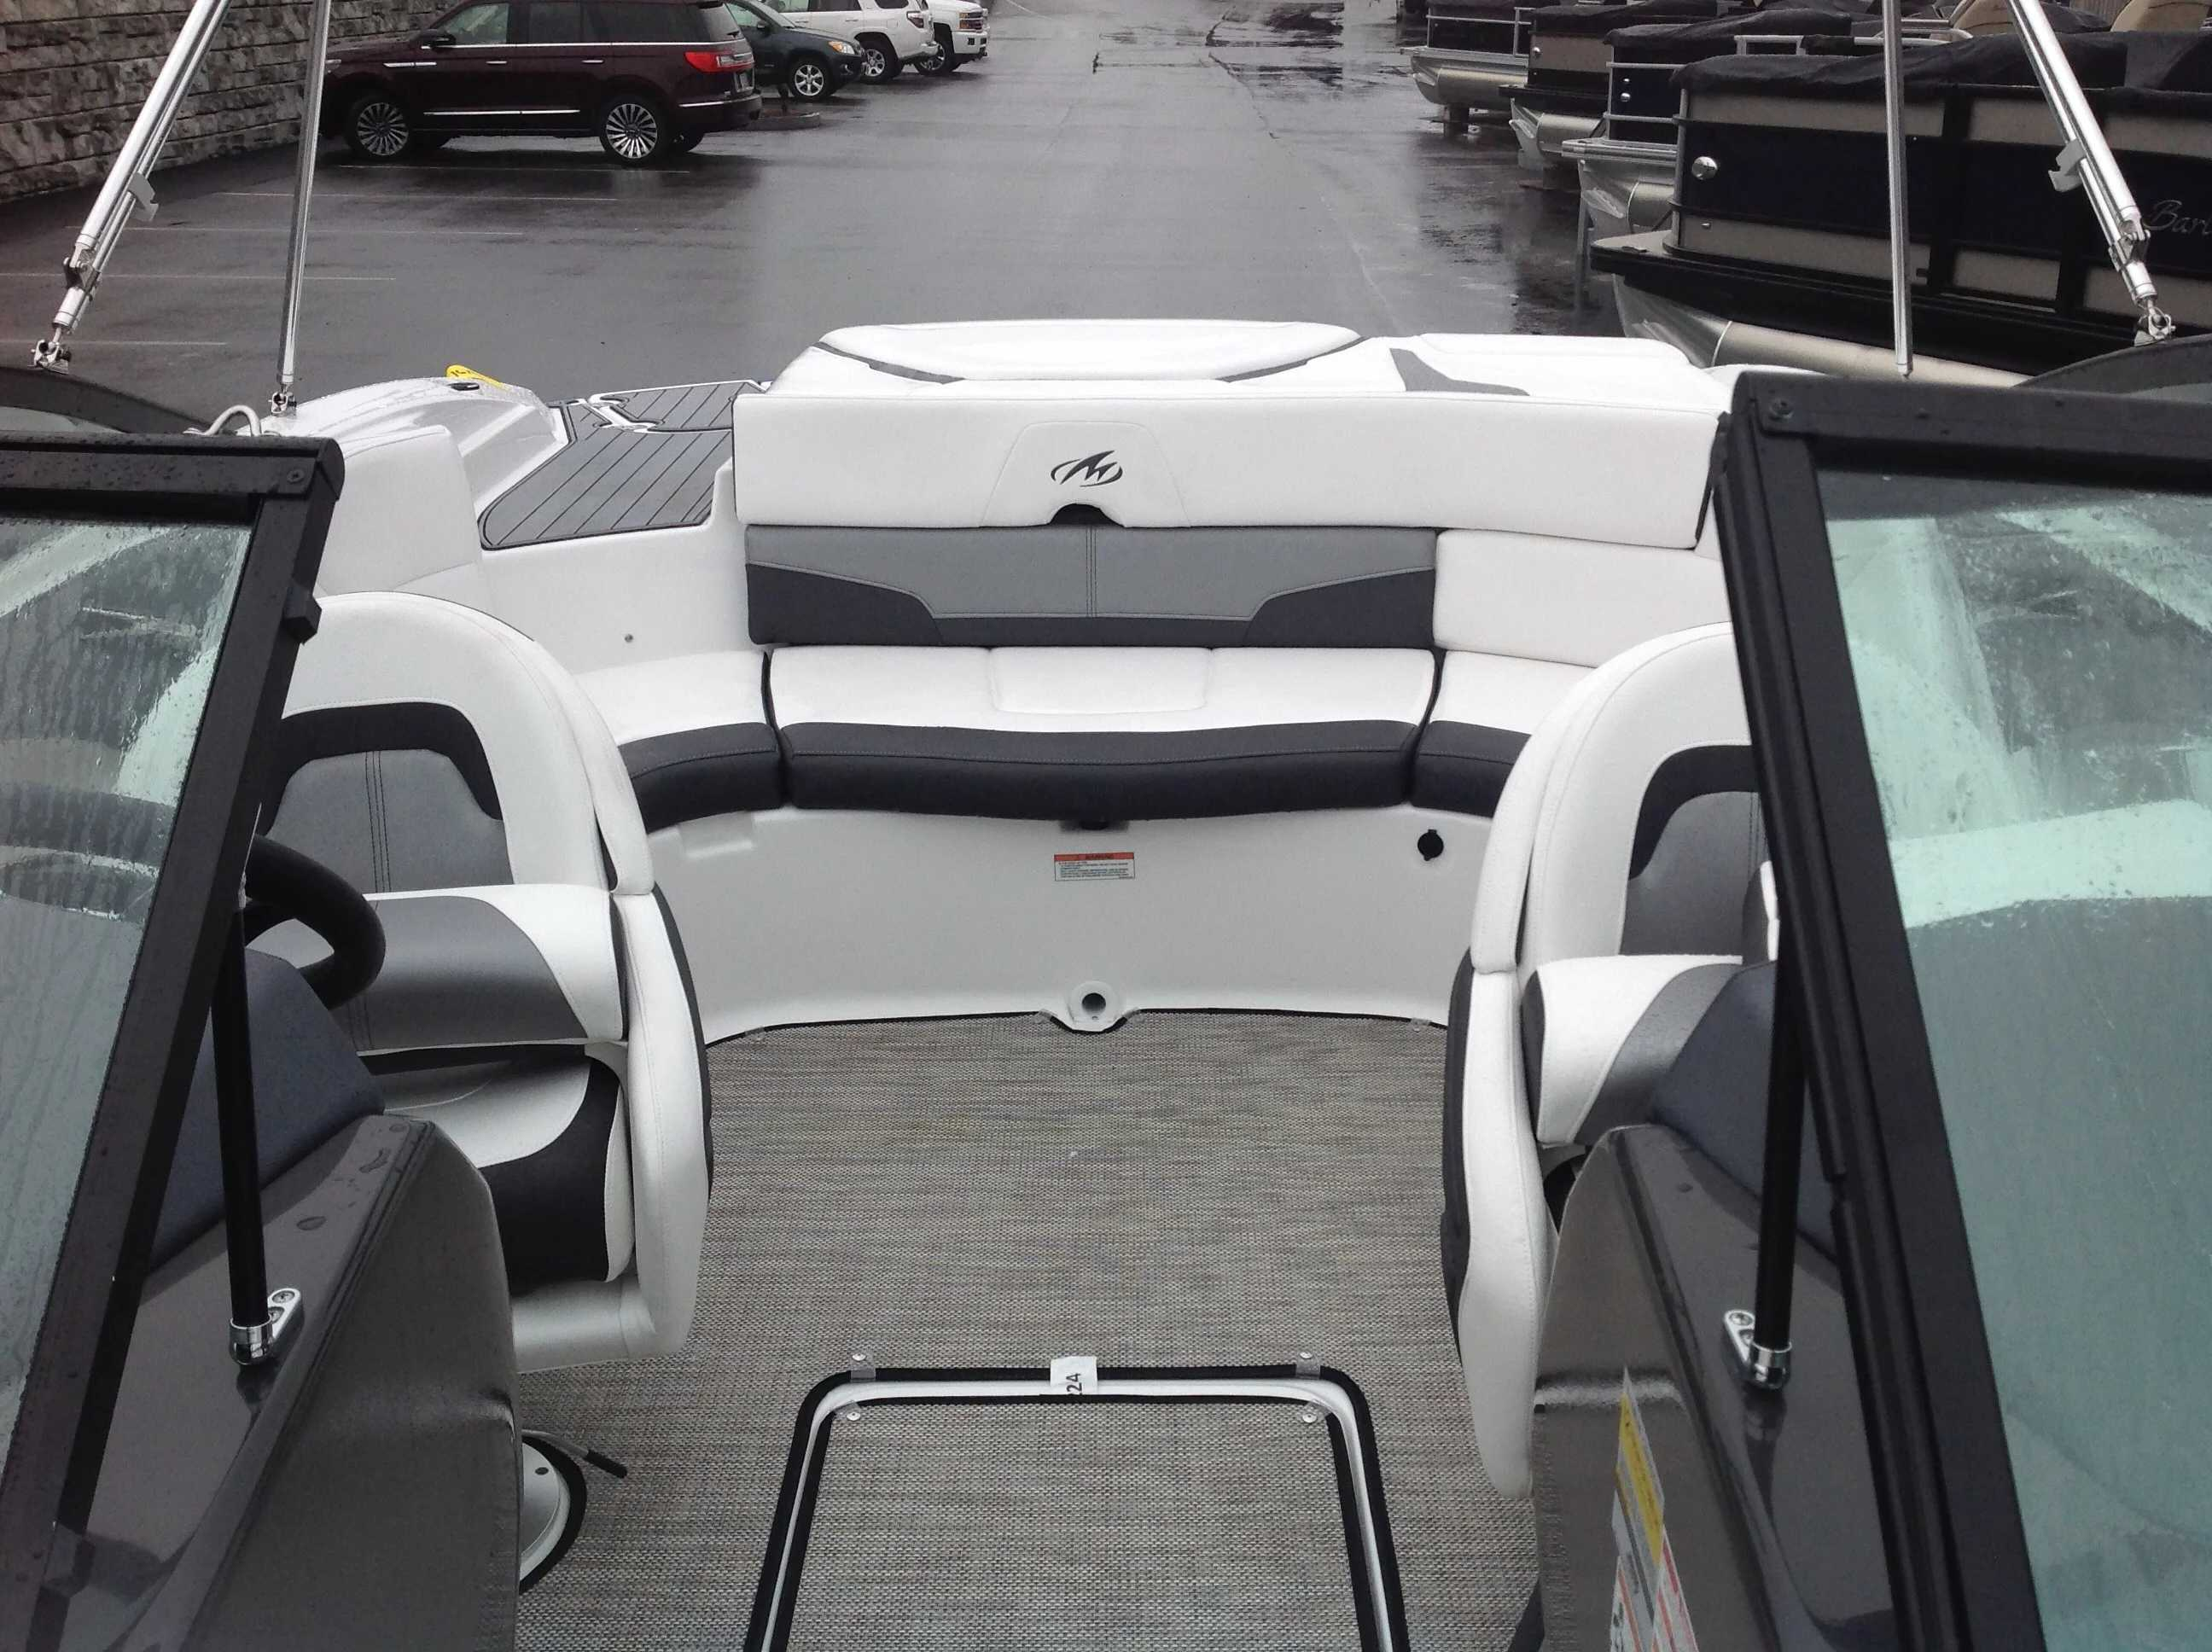 2022 Monterey boat for sale, model of the boat is 224FS & Image # 3 of 10